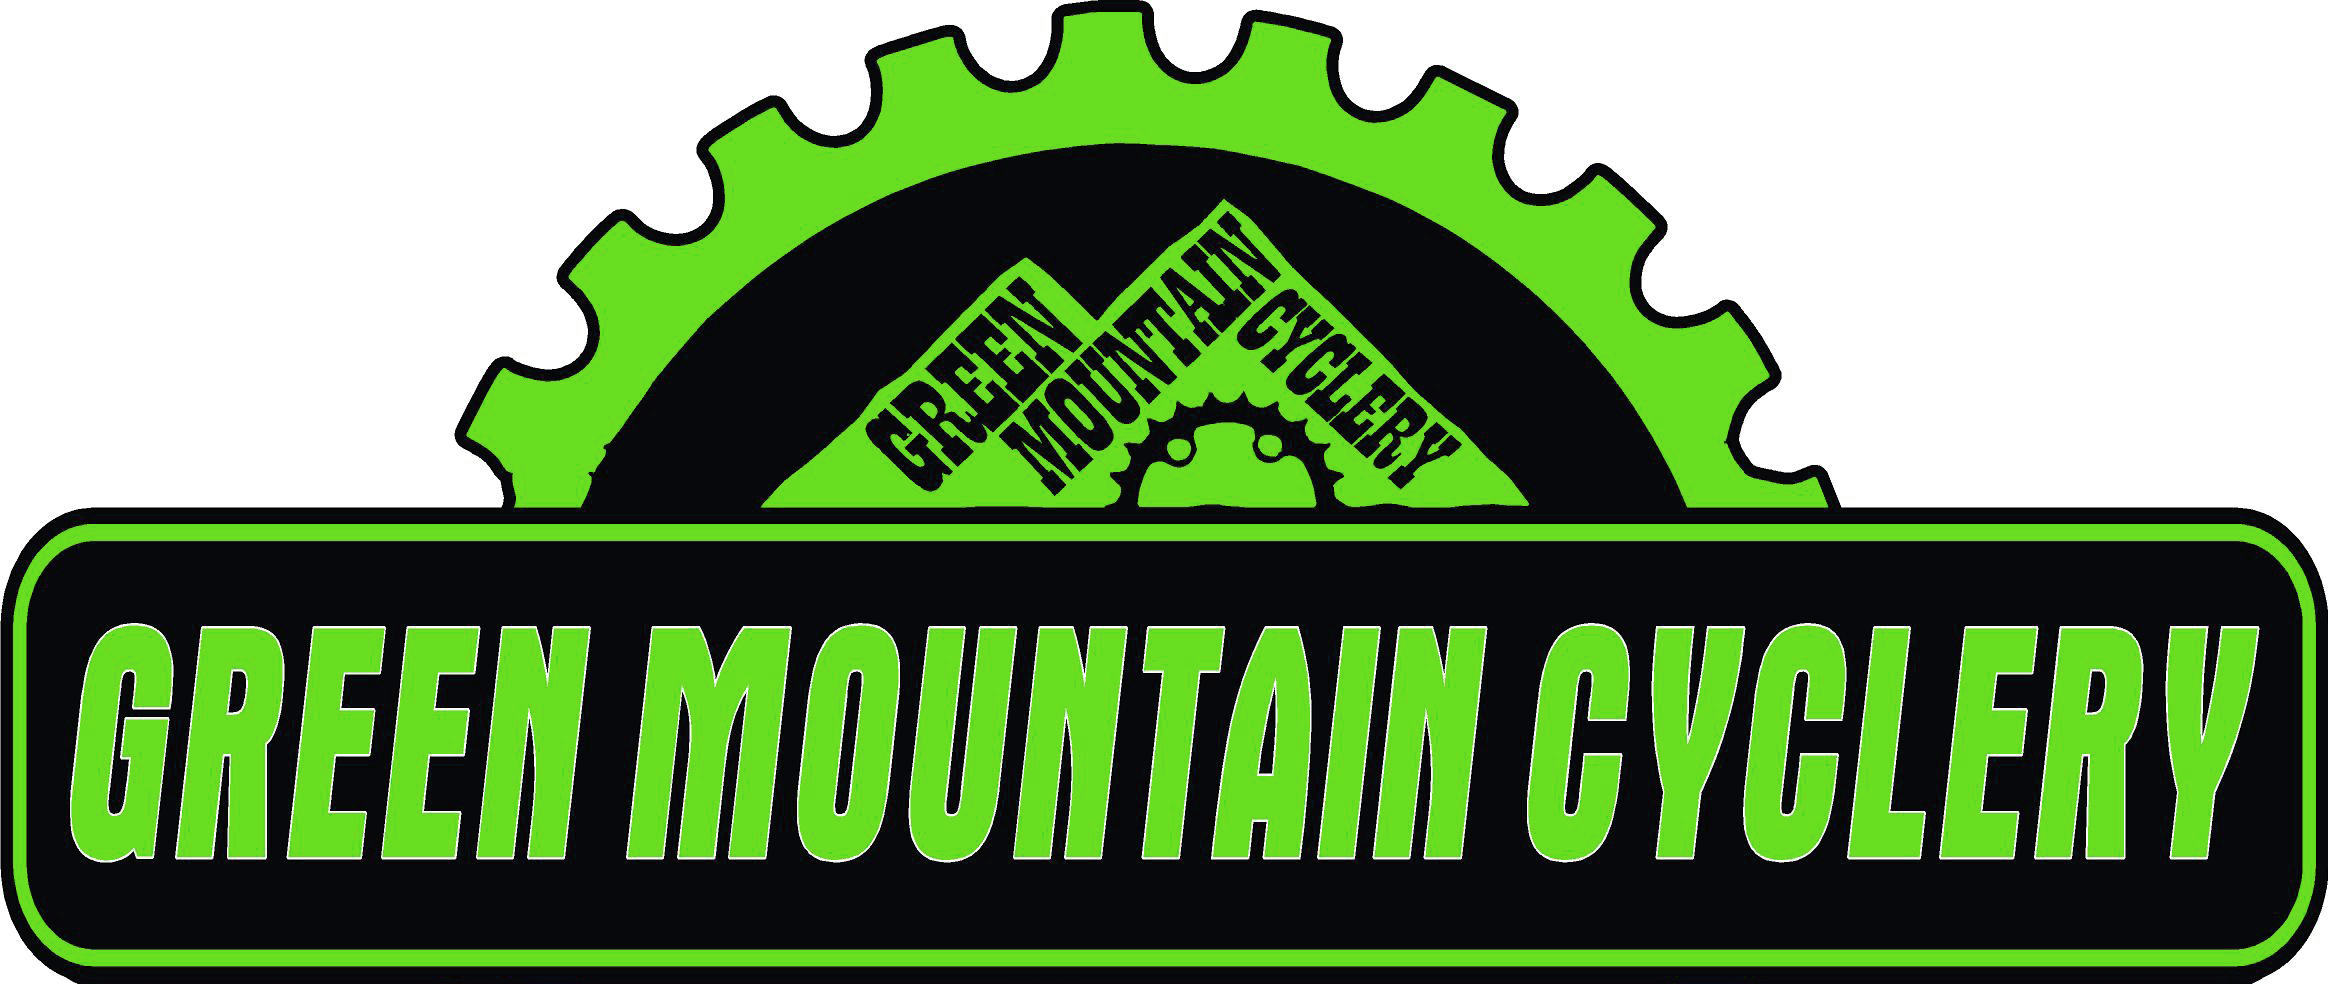 Green Mountain Cyclery, Inc.